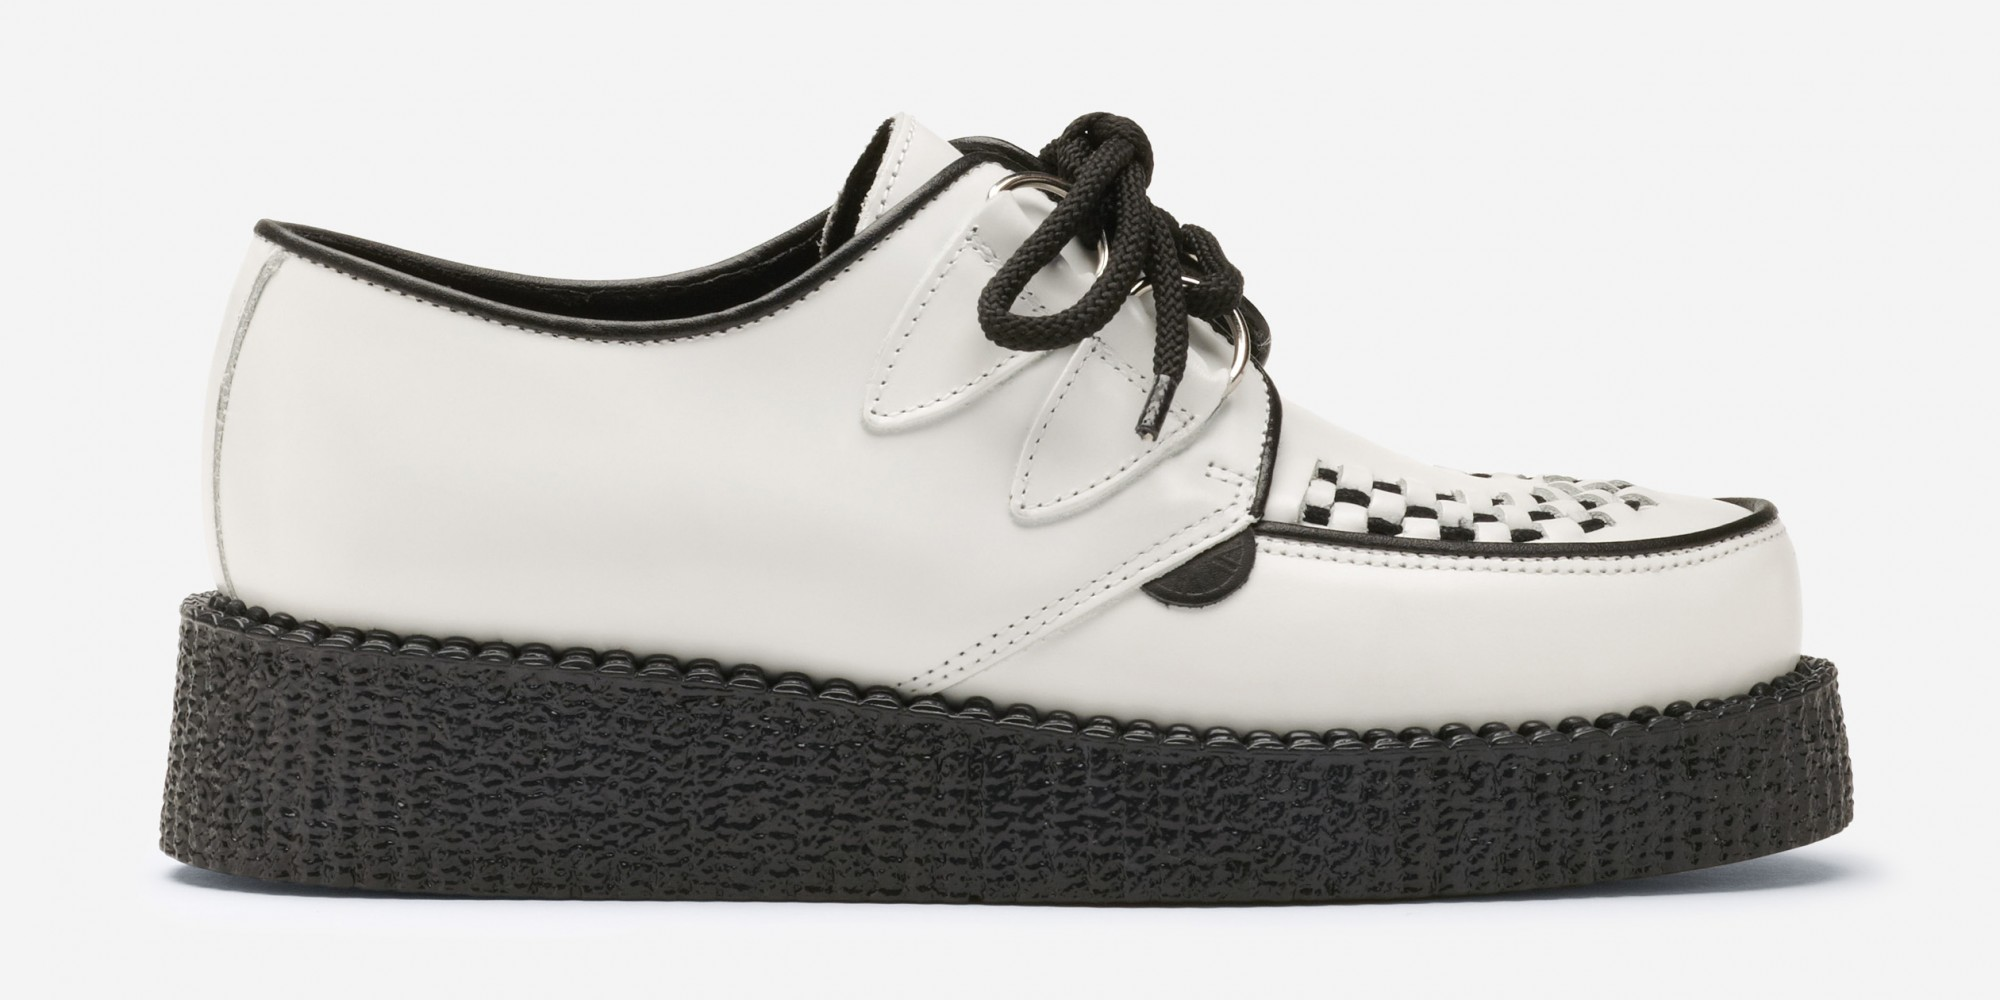 Underground Leather Brothel Creepers | Single Sole Wulfrun Creepers White Leather | Shoes,Creepers,Underground,England